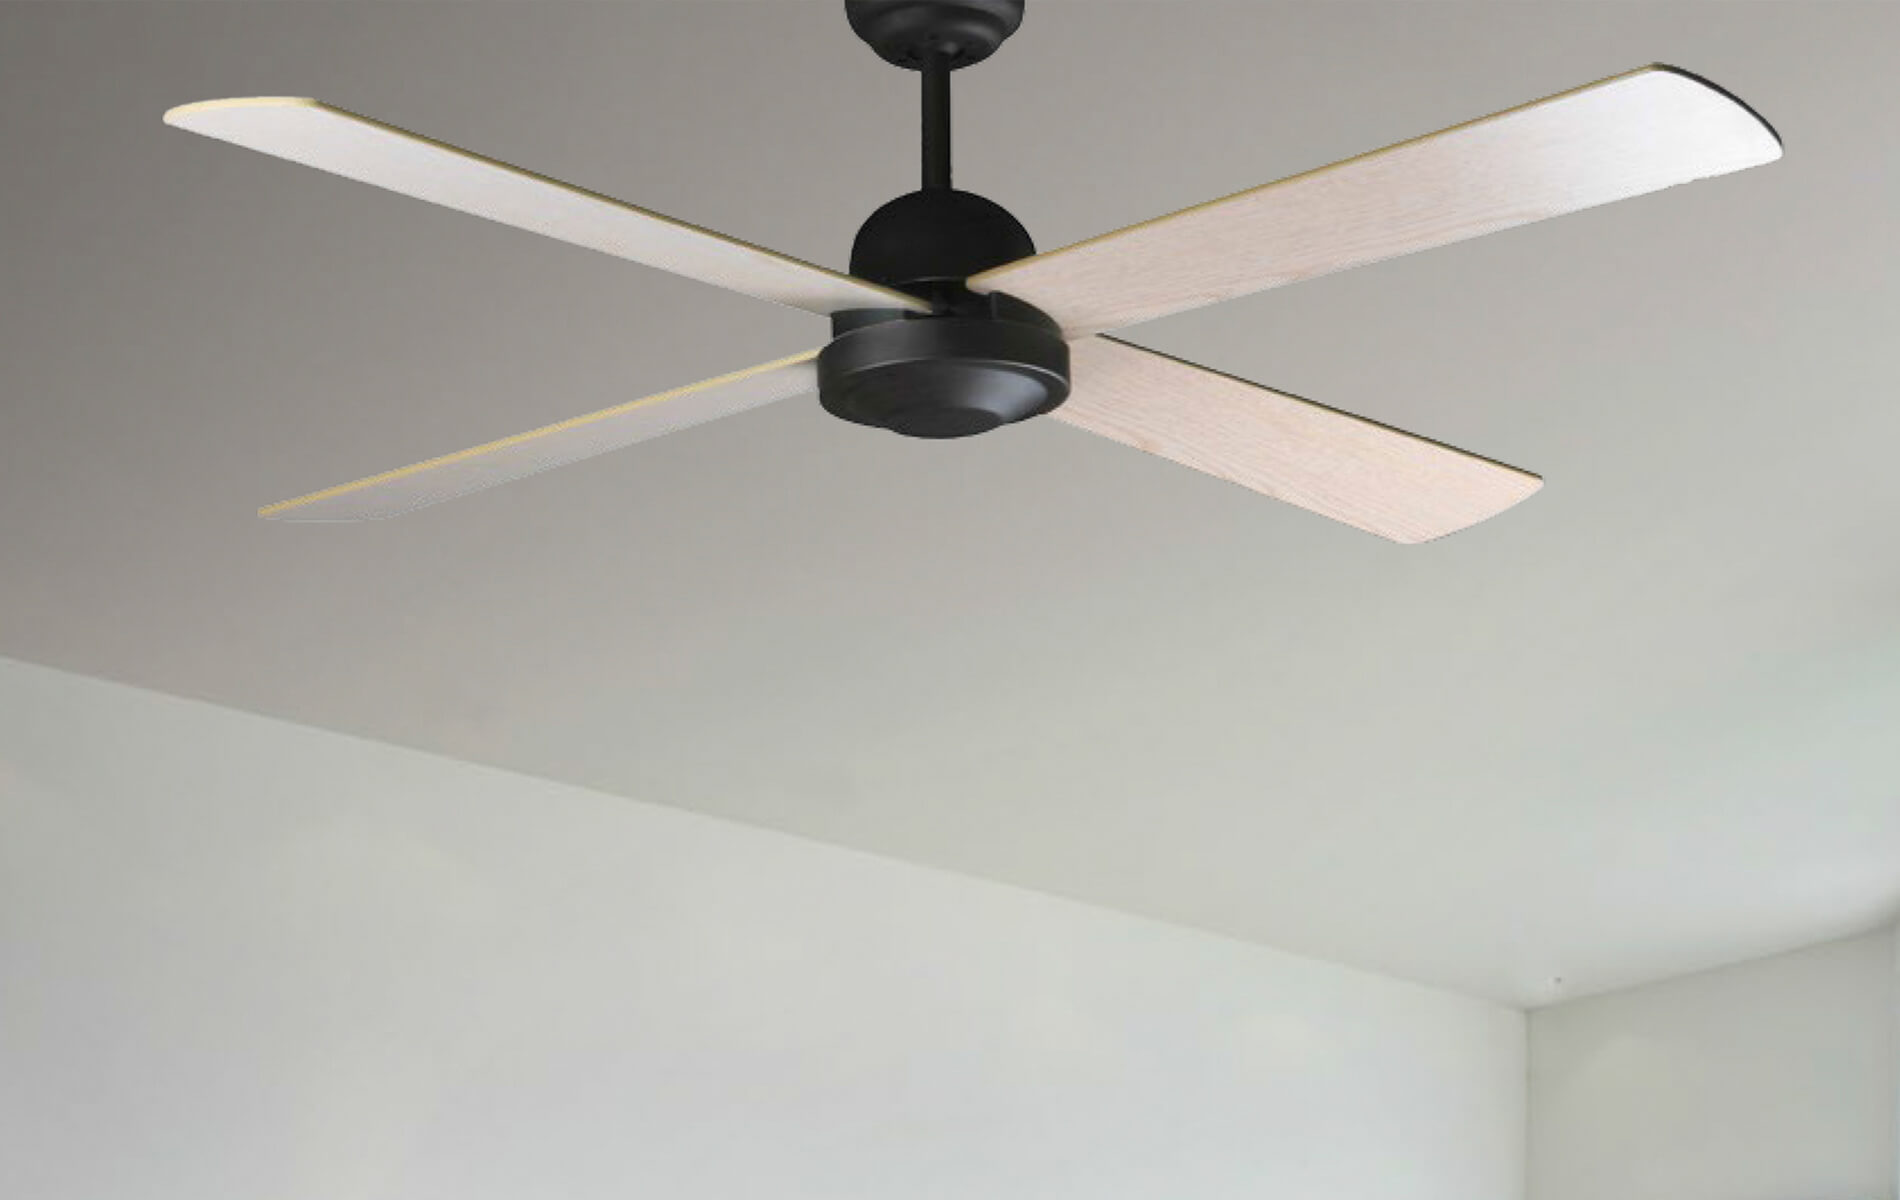 More information of Faro IBIZA ceiling fan.